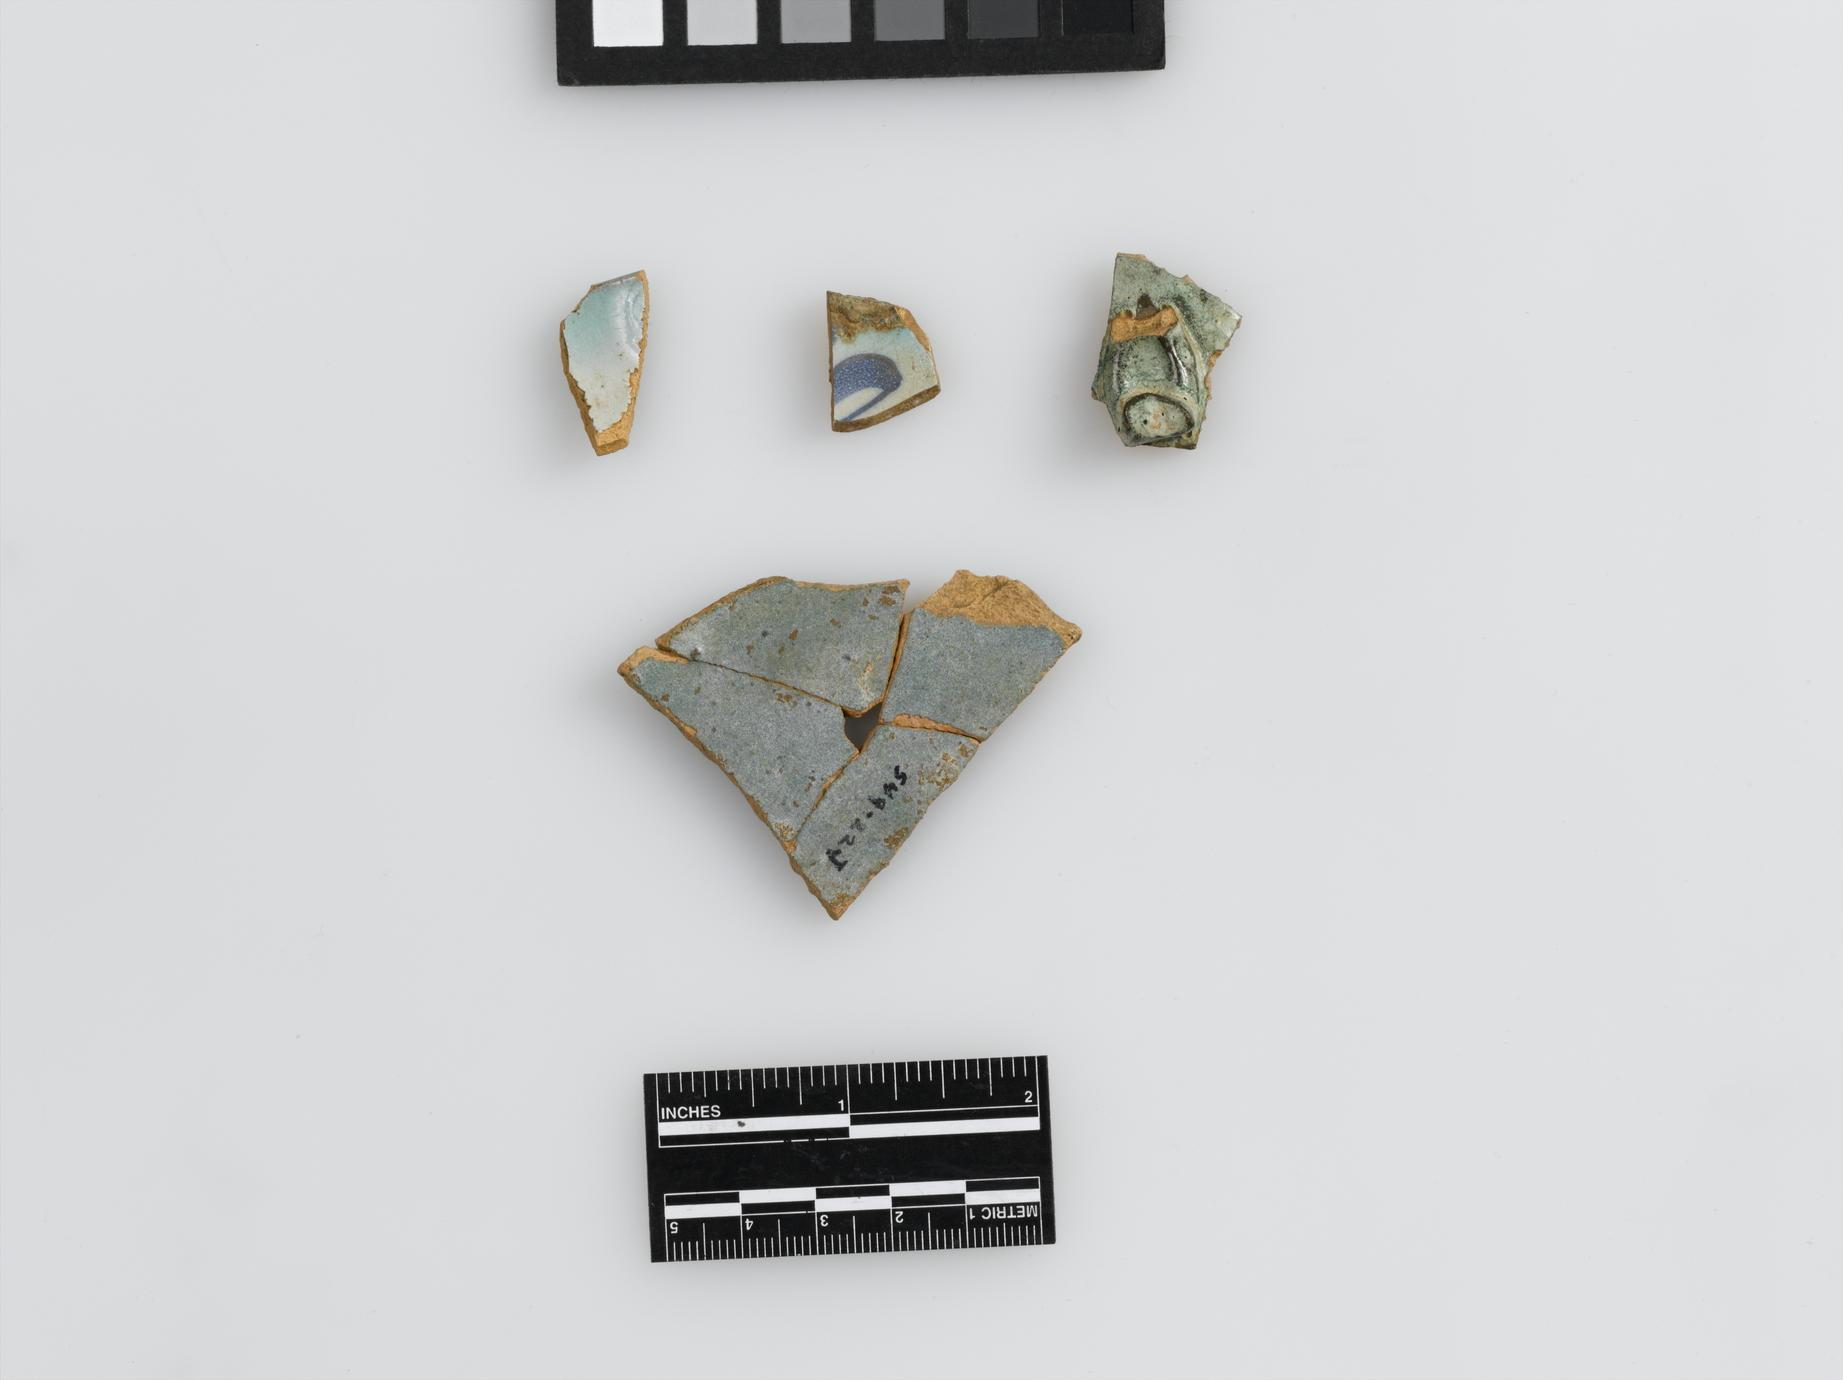 Faience sherds